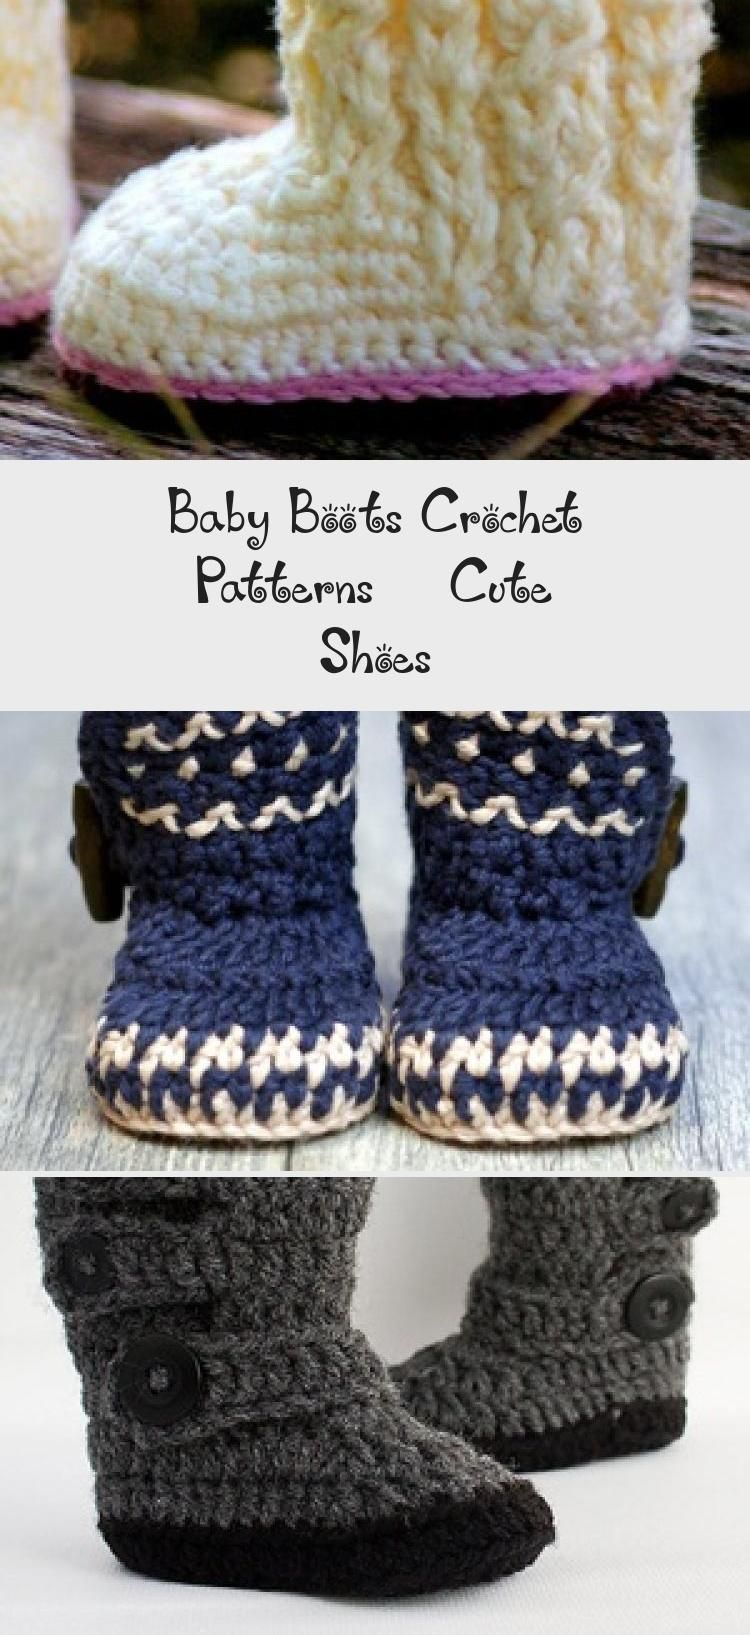 Make a cute pair of baby boots. baby boots crochet patterns - baby shoes crochet pattern- baby booties- amorecraftylife.com #crochet #crochetpattern #diy #baby #babycrochet # #crochetbabyboots